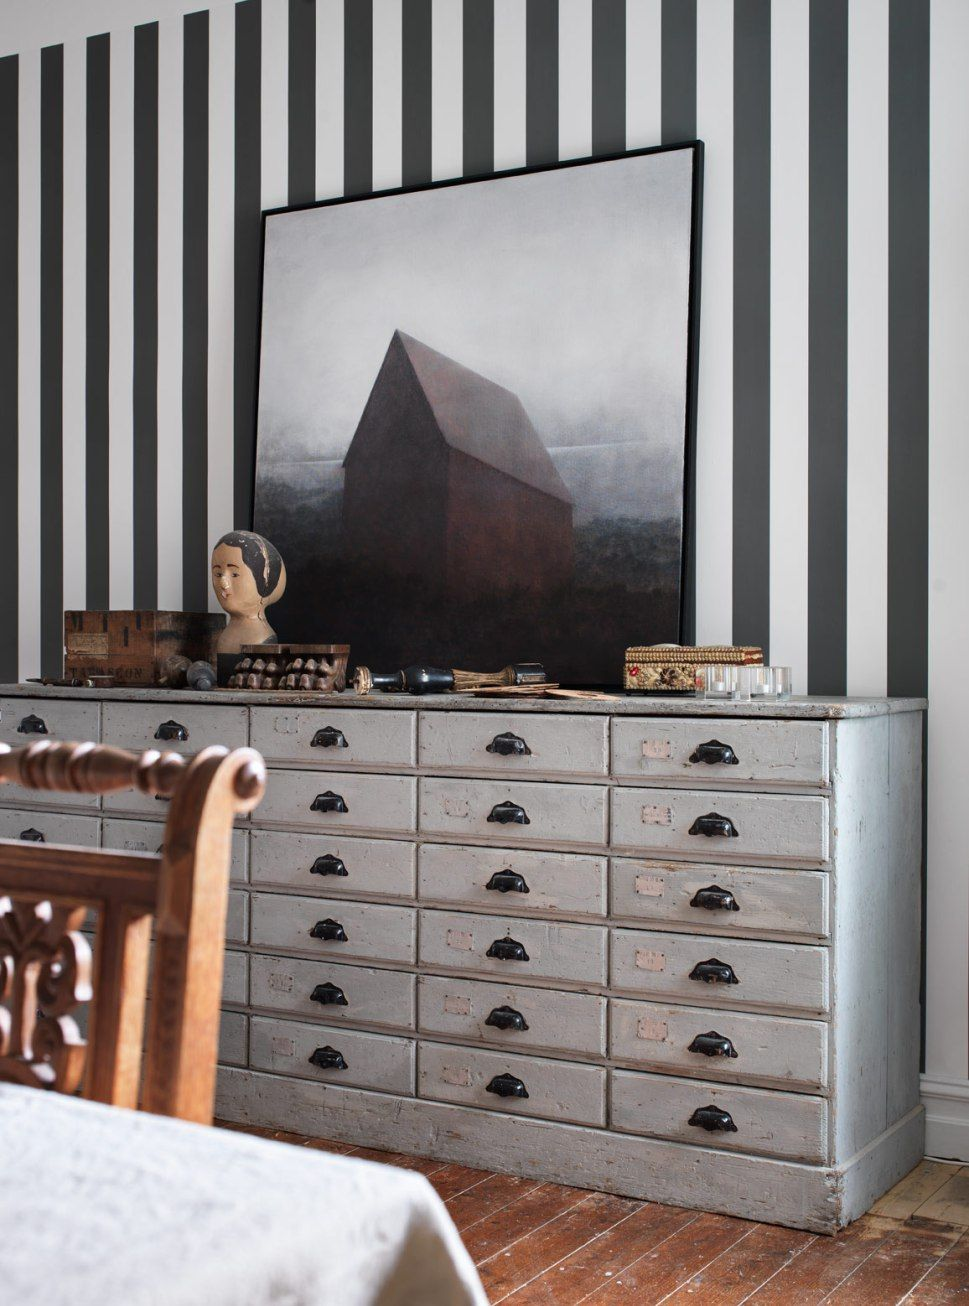 When you have a busy wall, like the striped one pictured here, you need to keep the custom framed art simple. This large, minimally framed photograph adds just the dimension and interest this wall needed, without competing with the wallpaper.